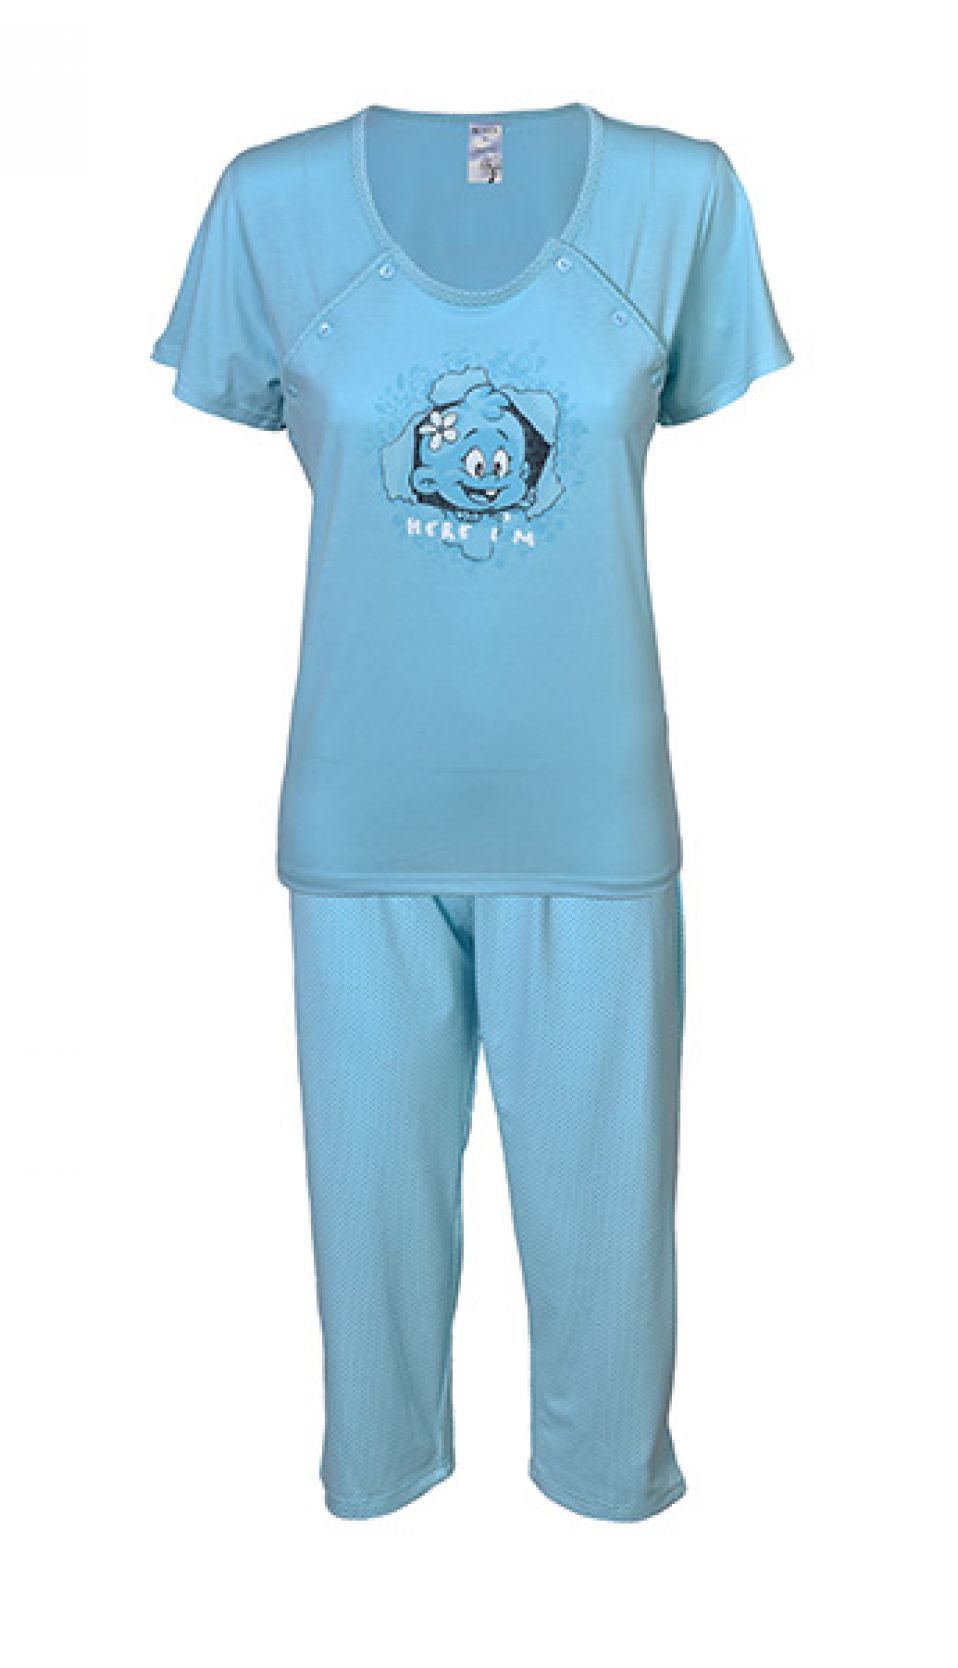 Ladies pajama for breastfeeding BENTER 61388